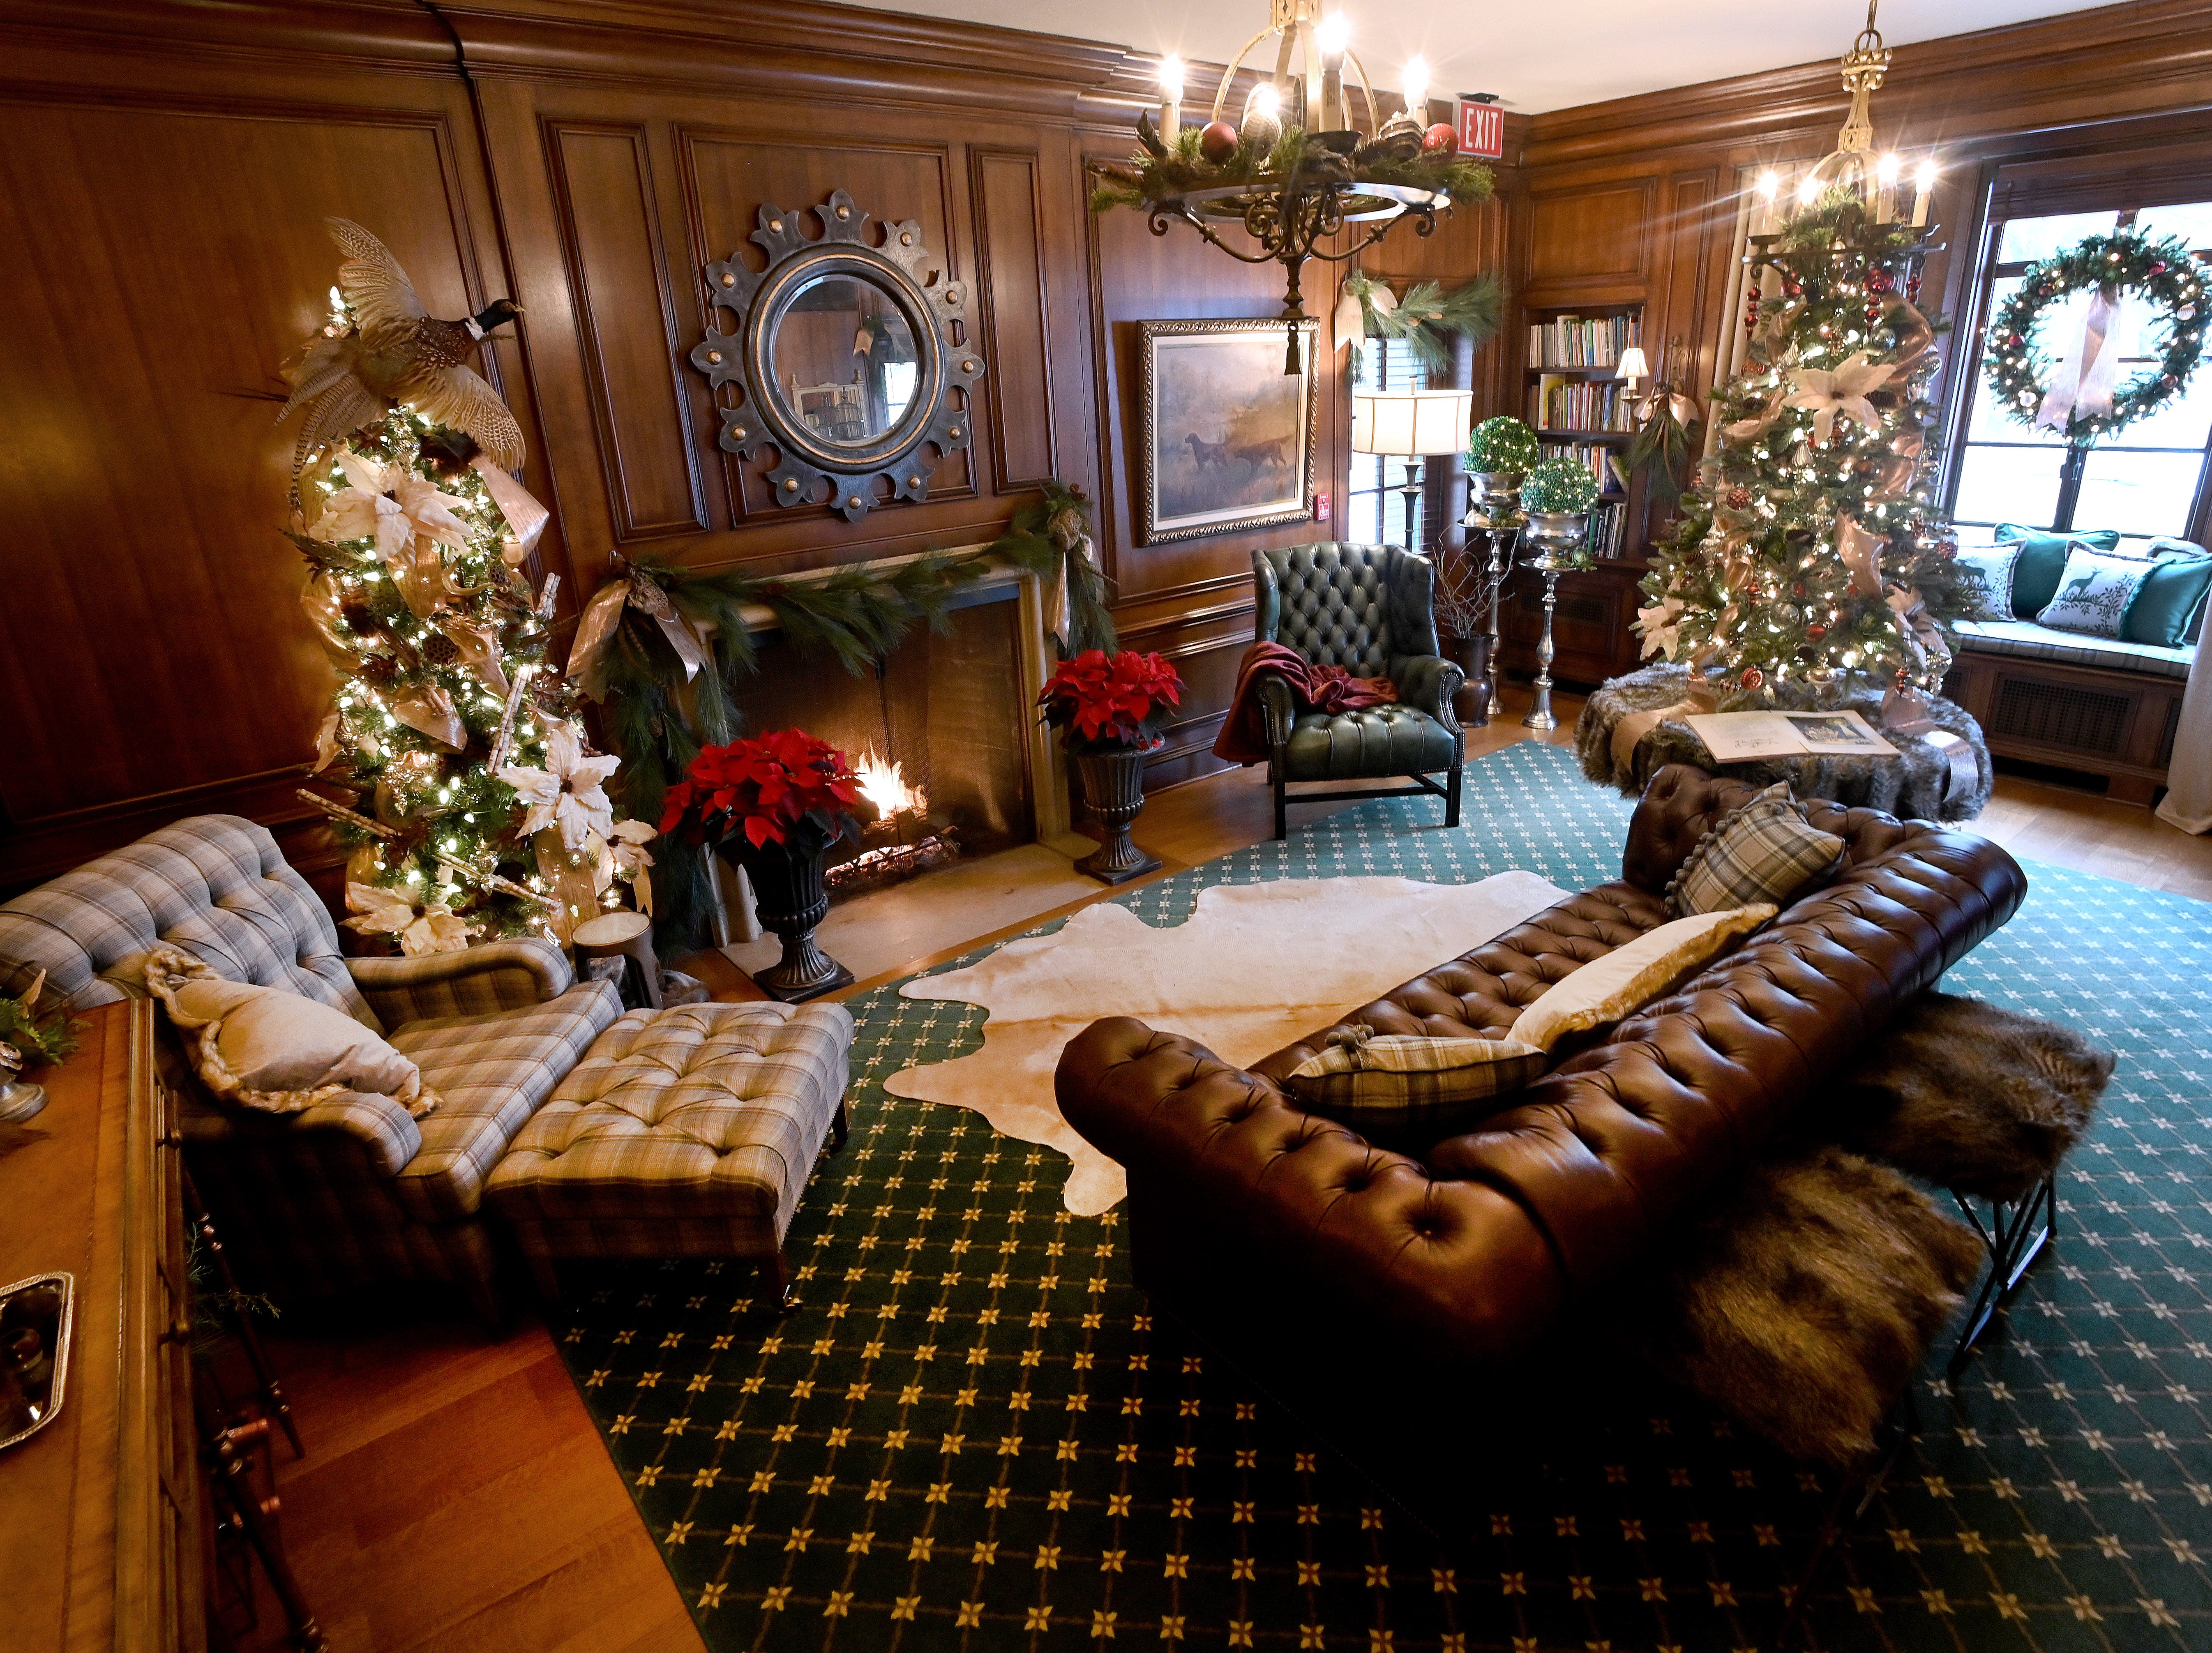 The manor's study is decked-out in Christmas finery, and a warm fire burns in the fireplace.